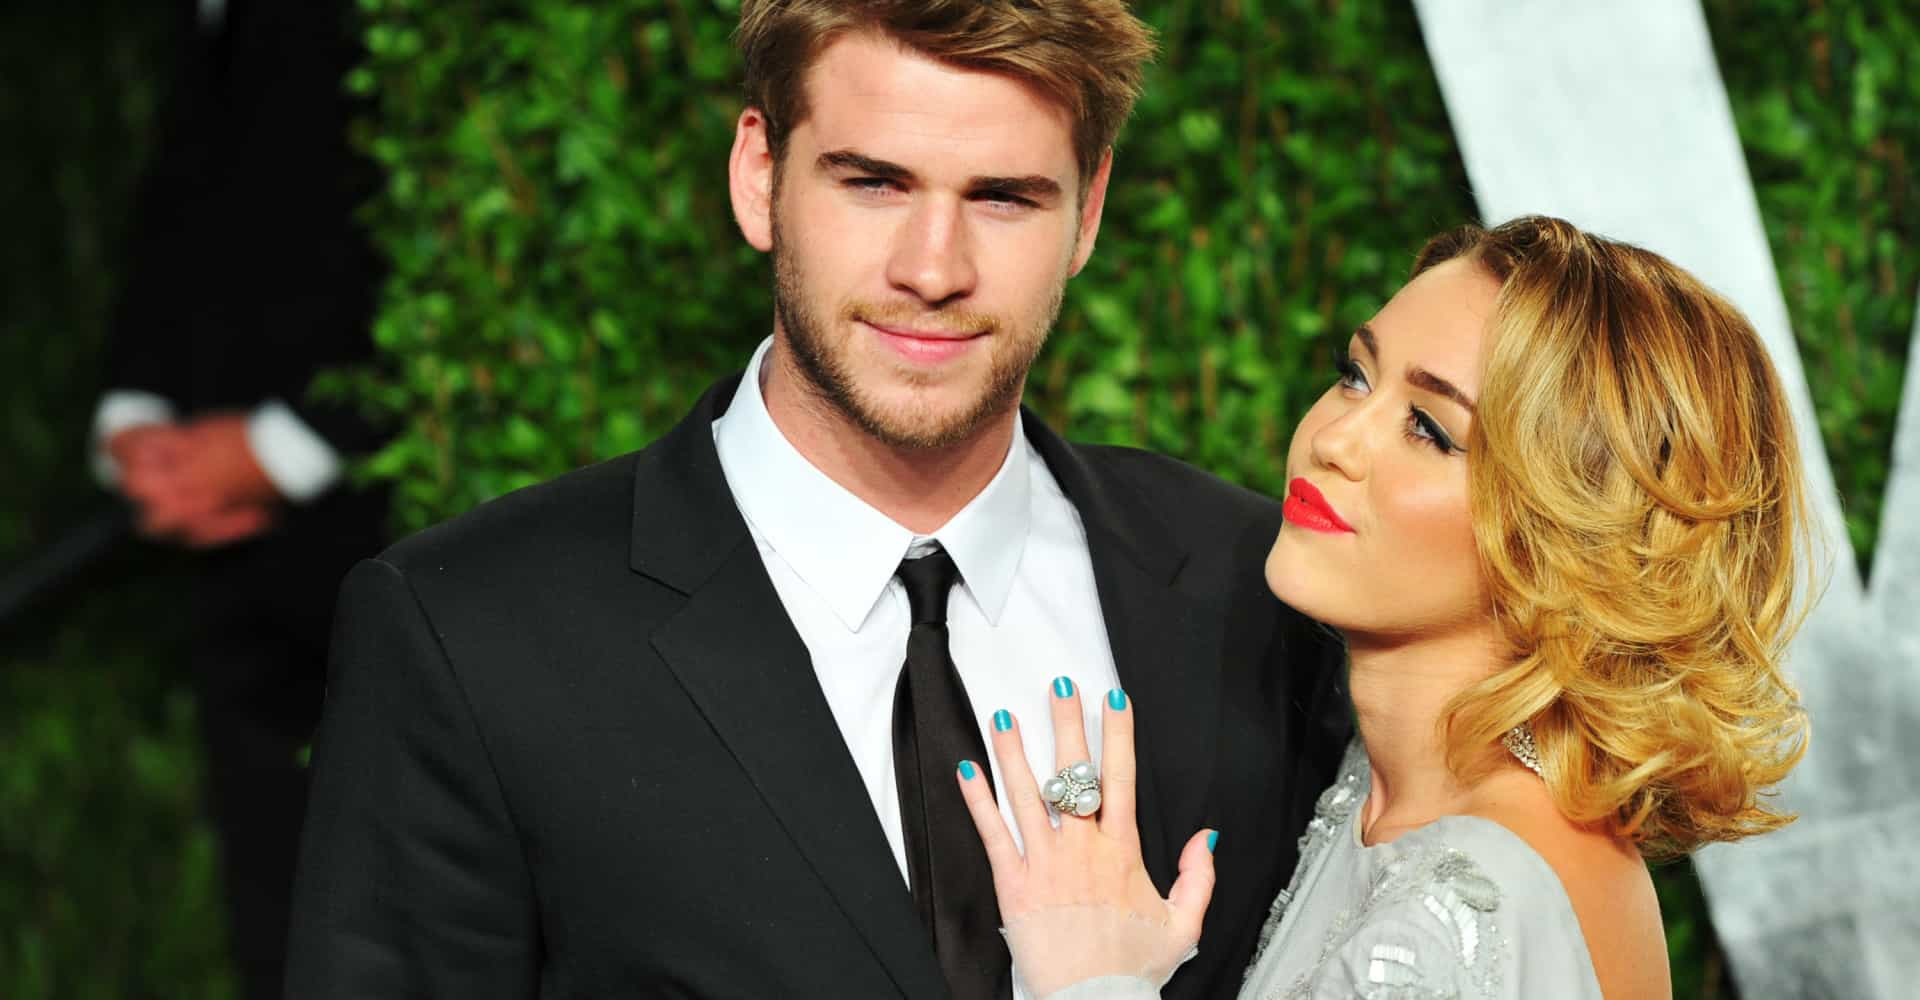 See the house that Miley Cyrus and Liam Hemsworth want to buy